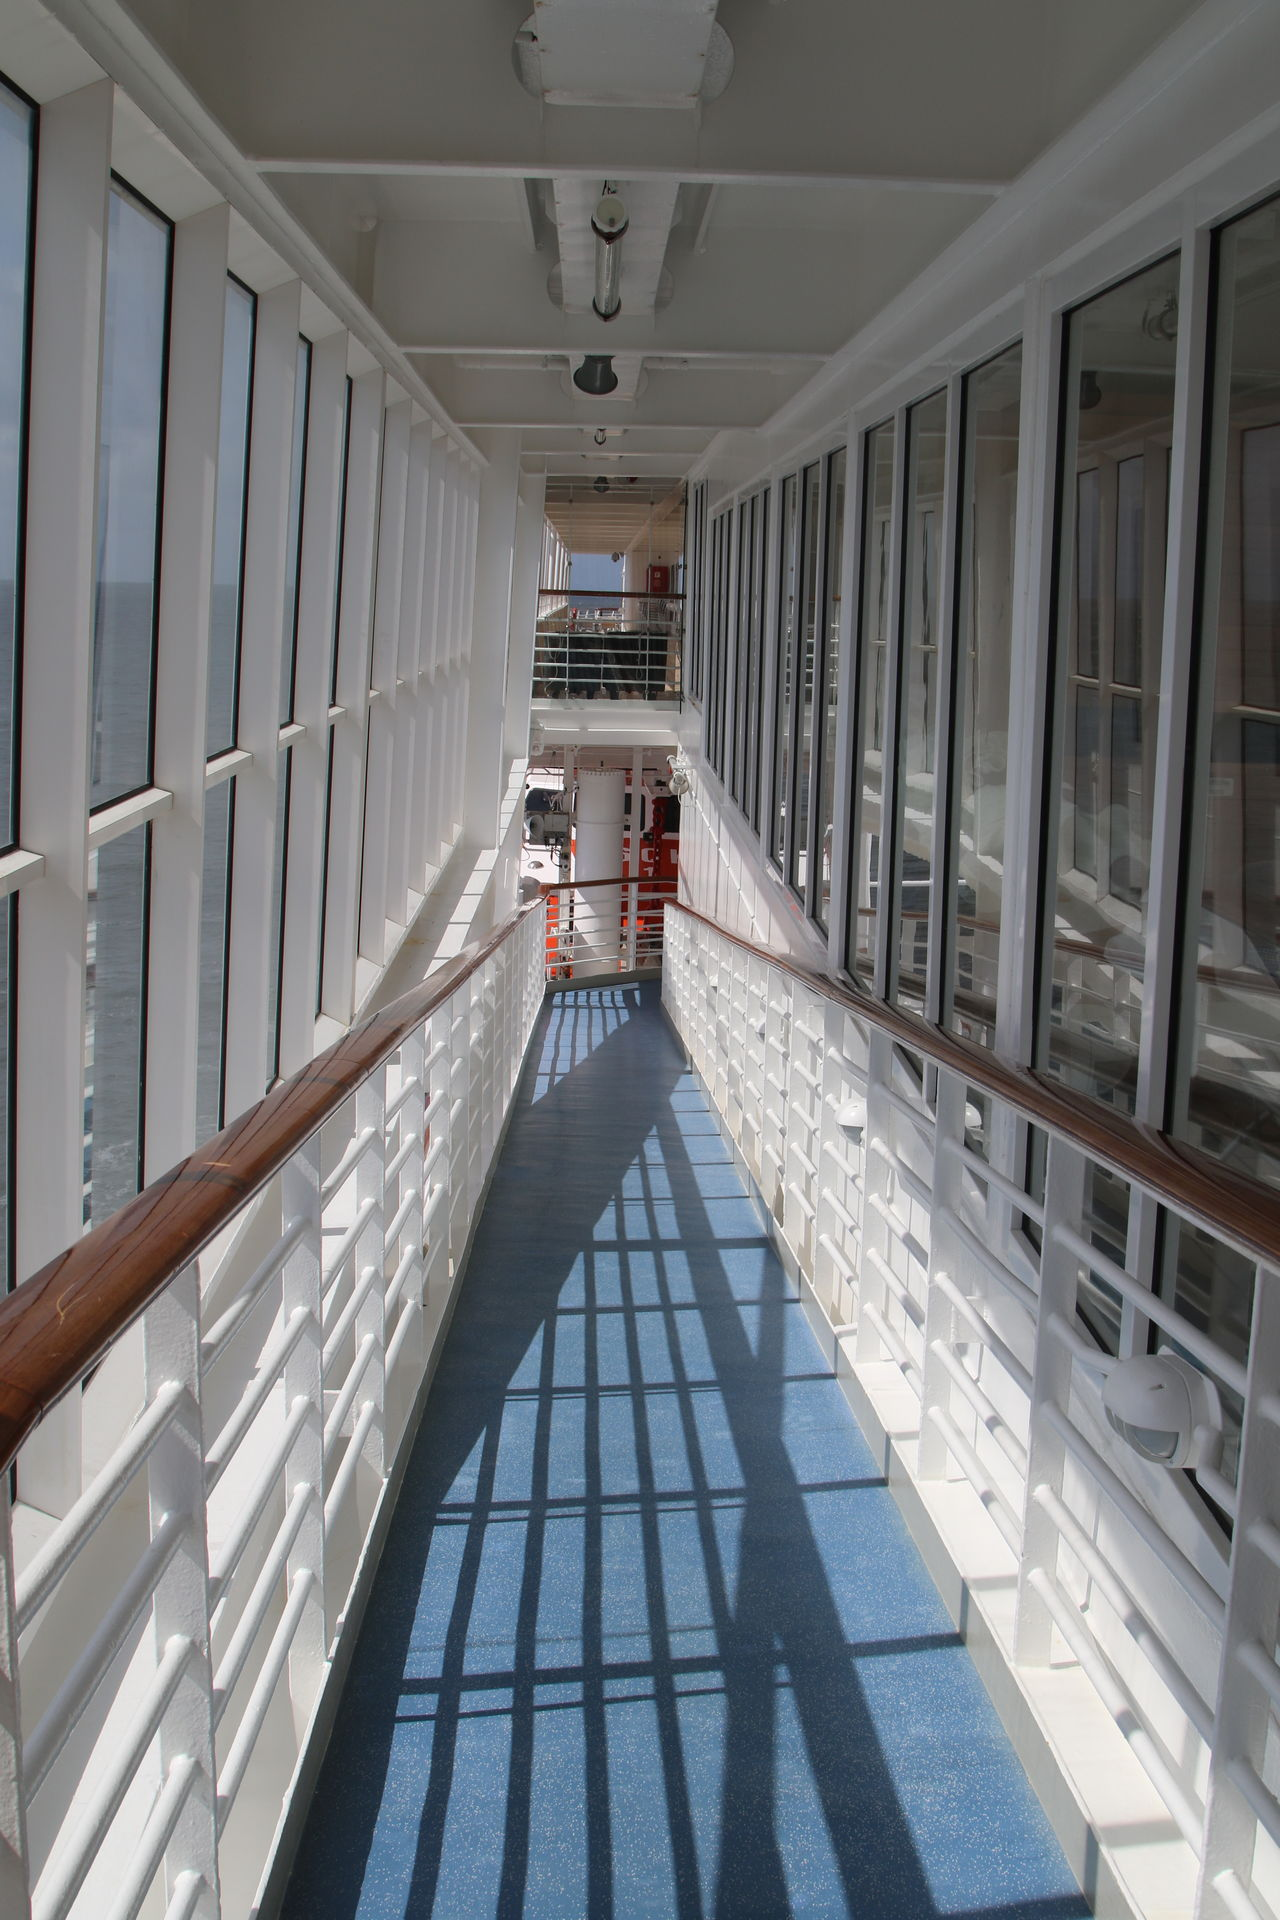 Cruise Ship Cruiseship Day Downstairs Gally Hallway Railing Ship Summer Sunny Tunnel Vision